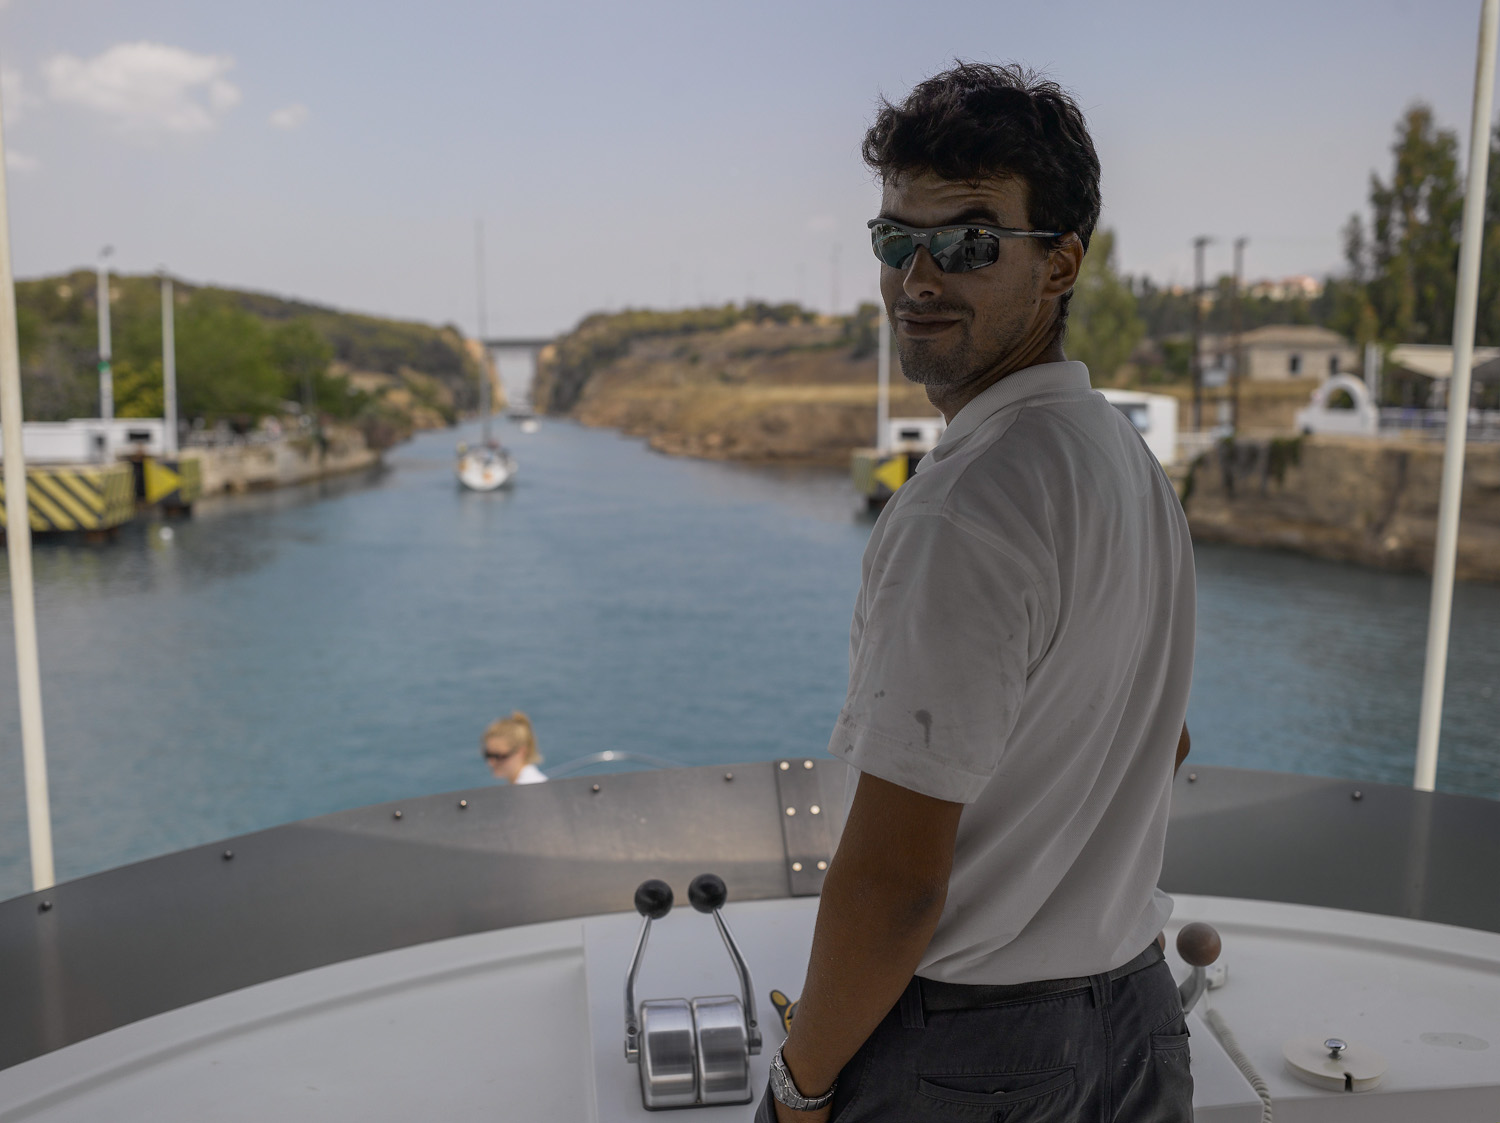 Yaniv - Corinth Canal, Greece, 2008